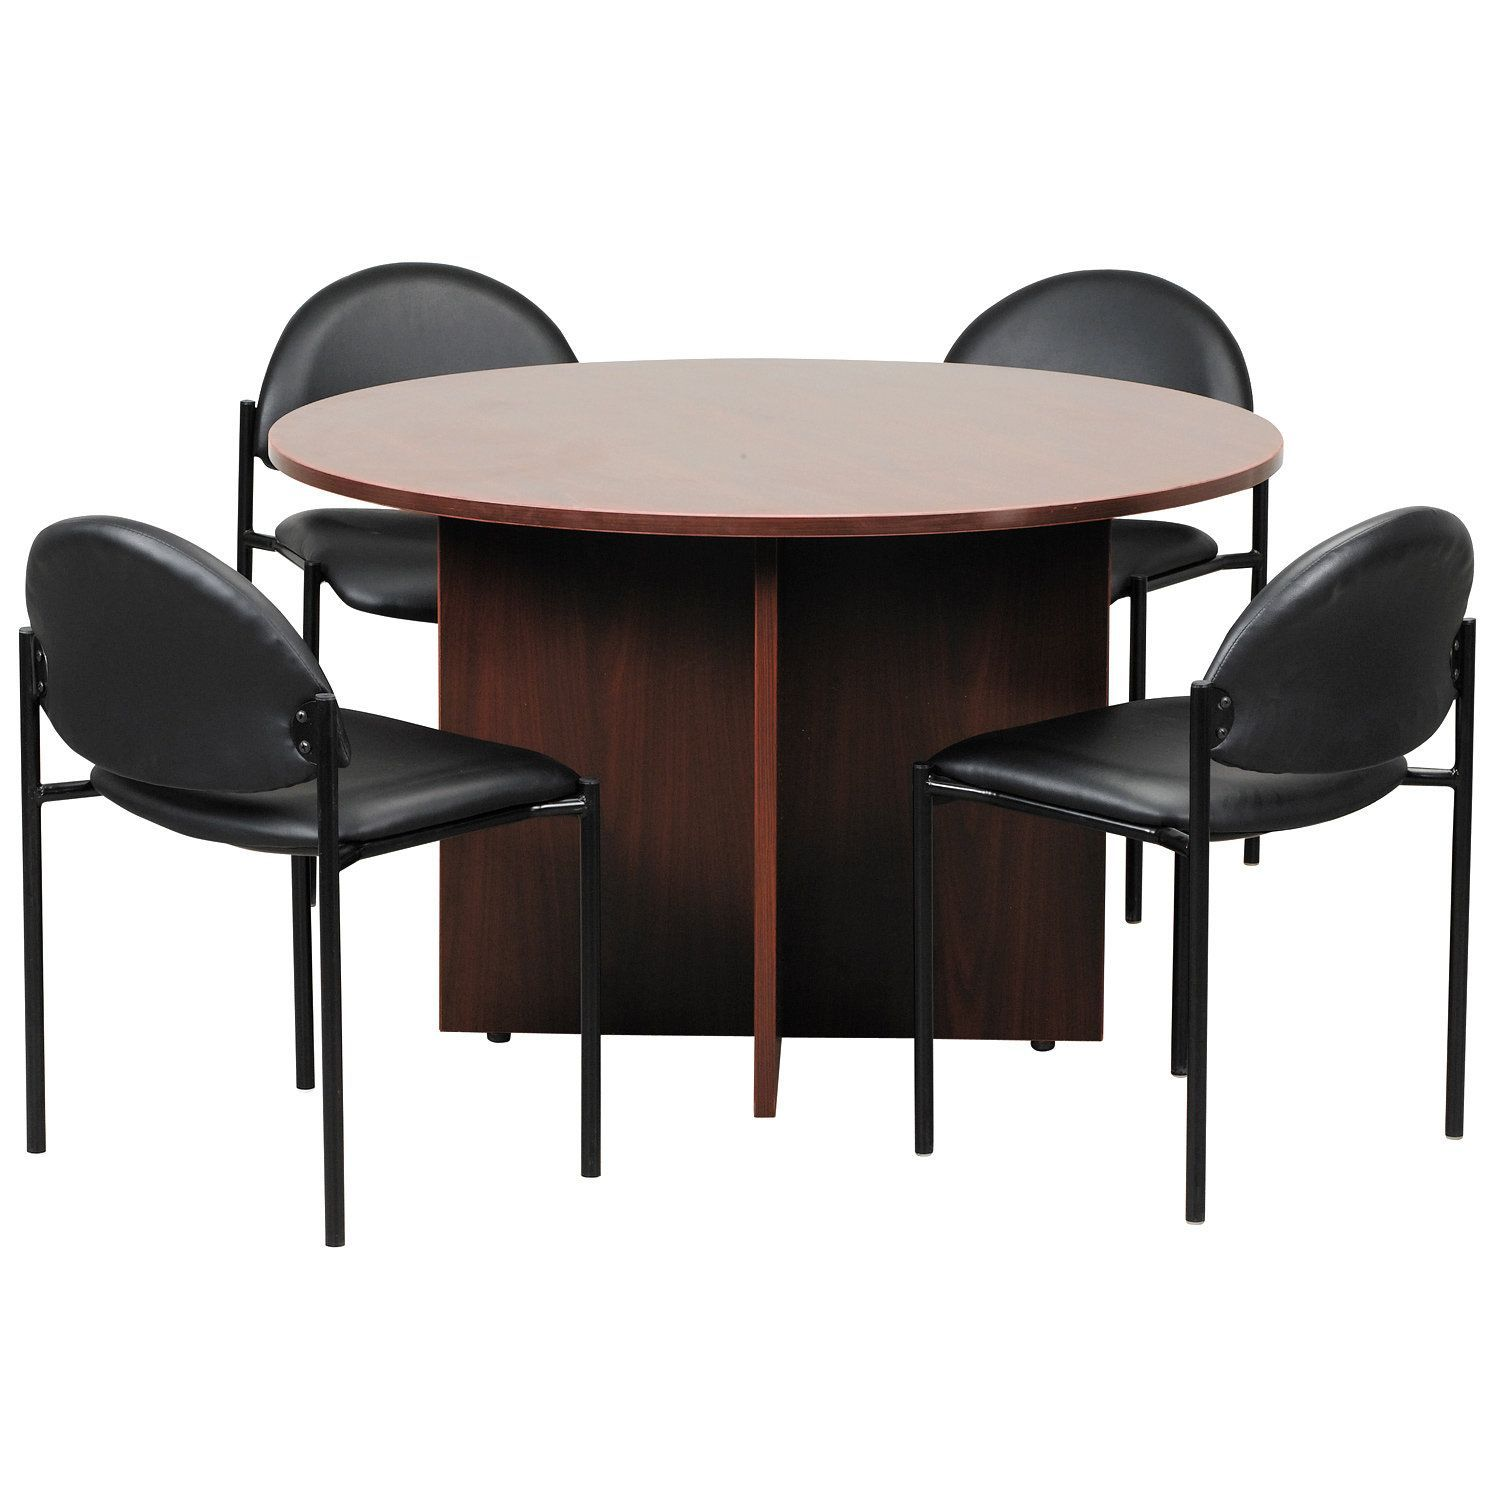 Boss 47 Inch Round Conference Table Round Conference Table Round Office Table Conference Table